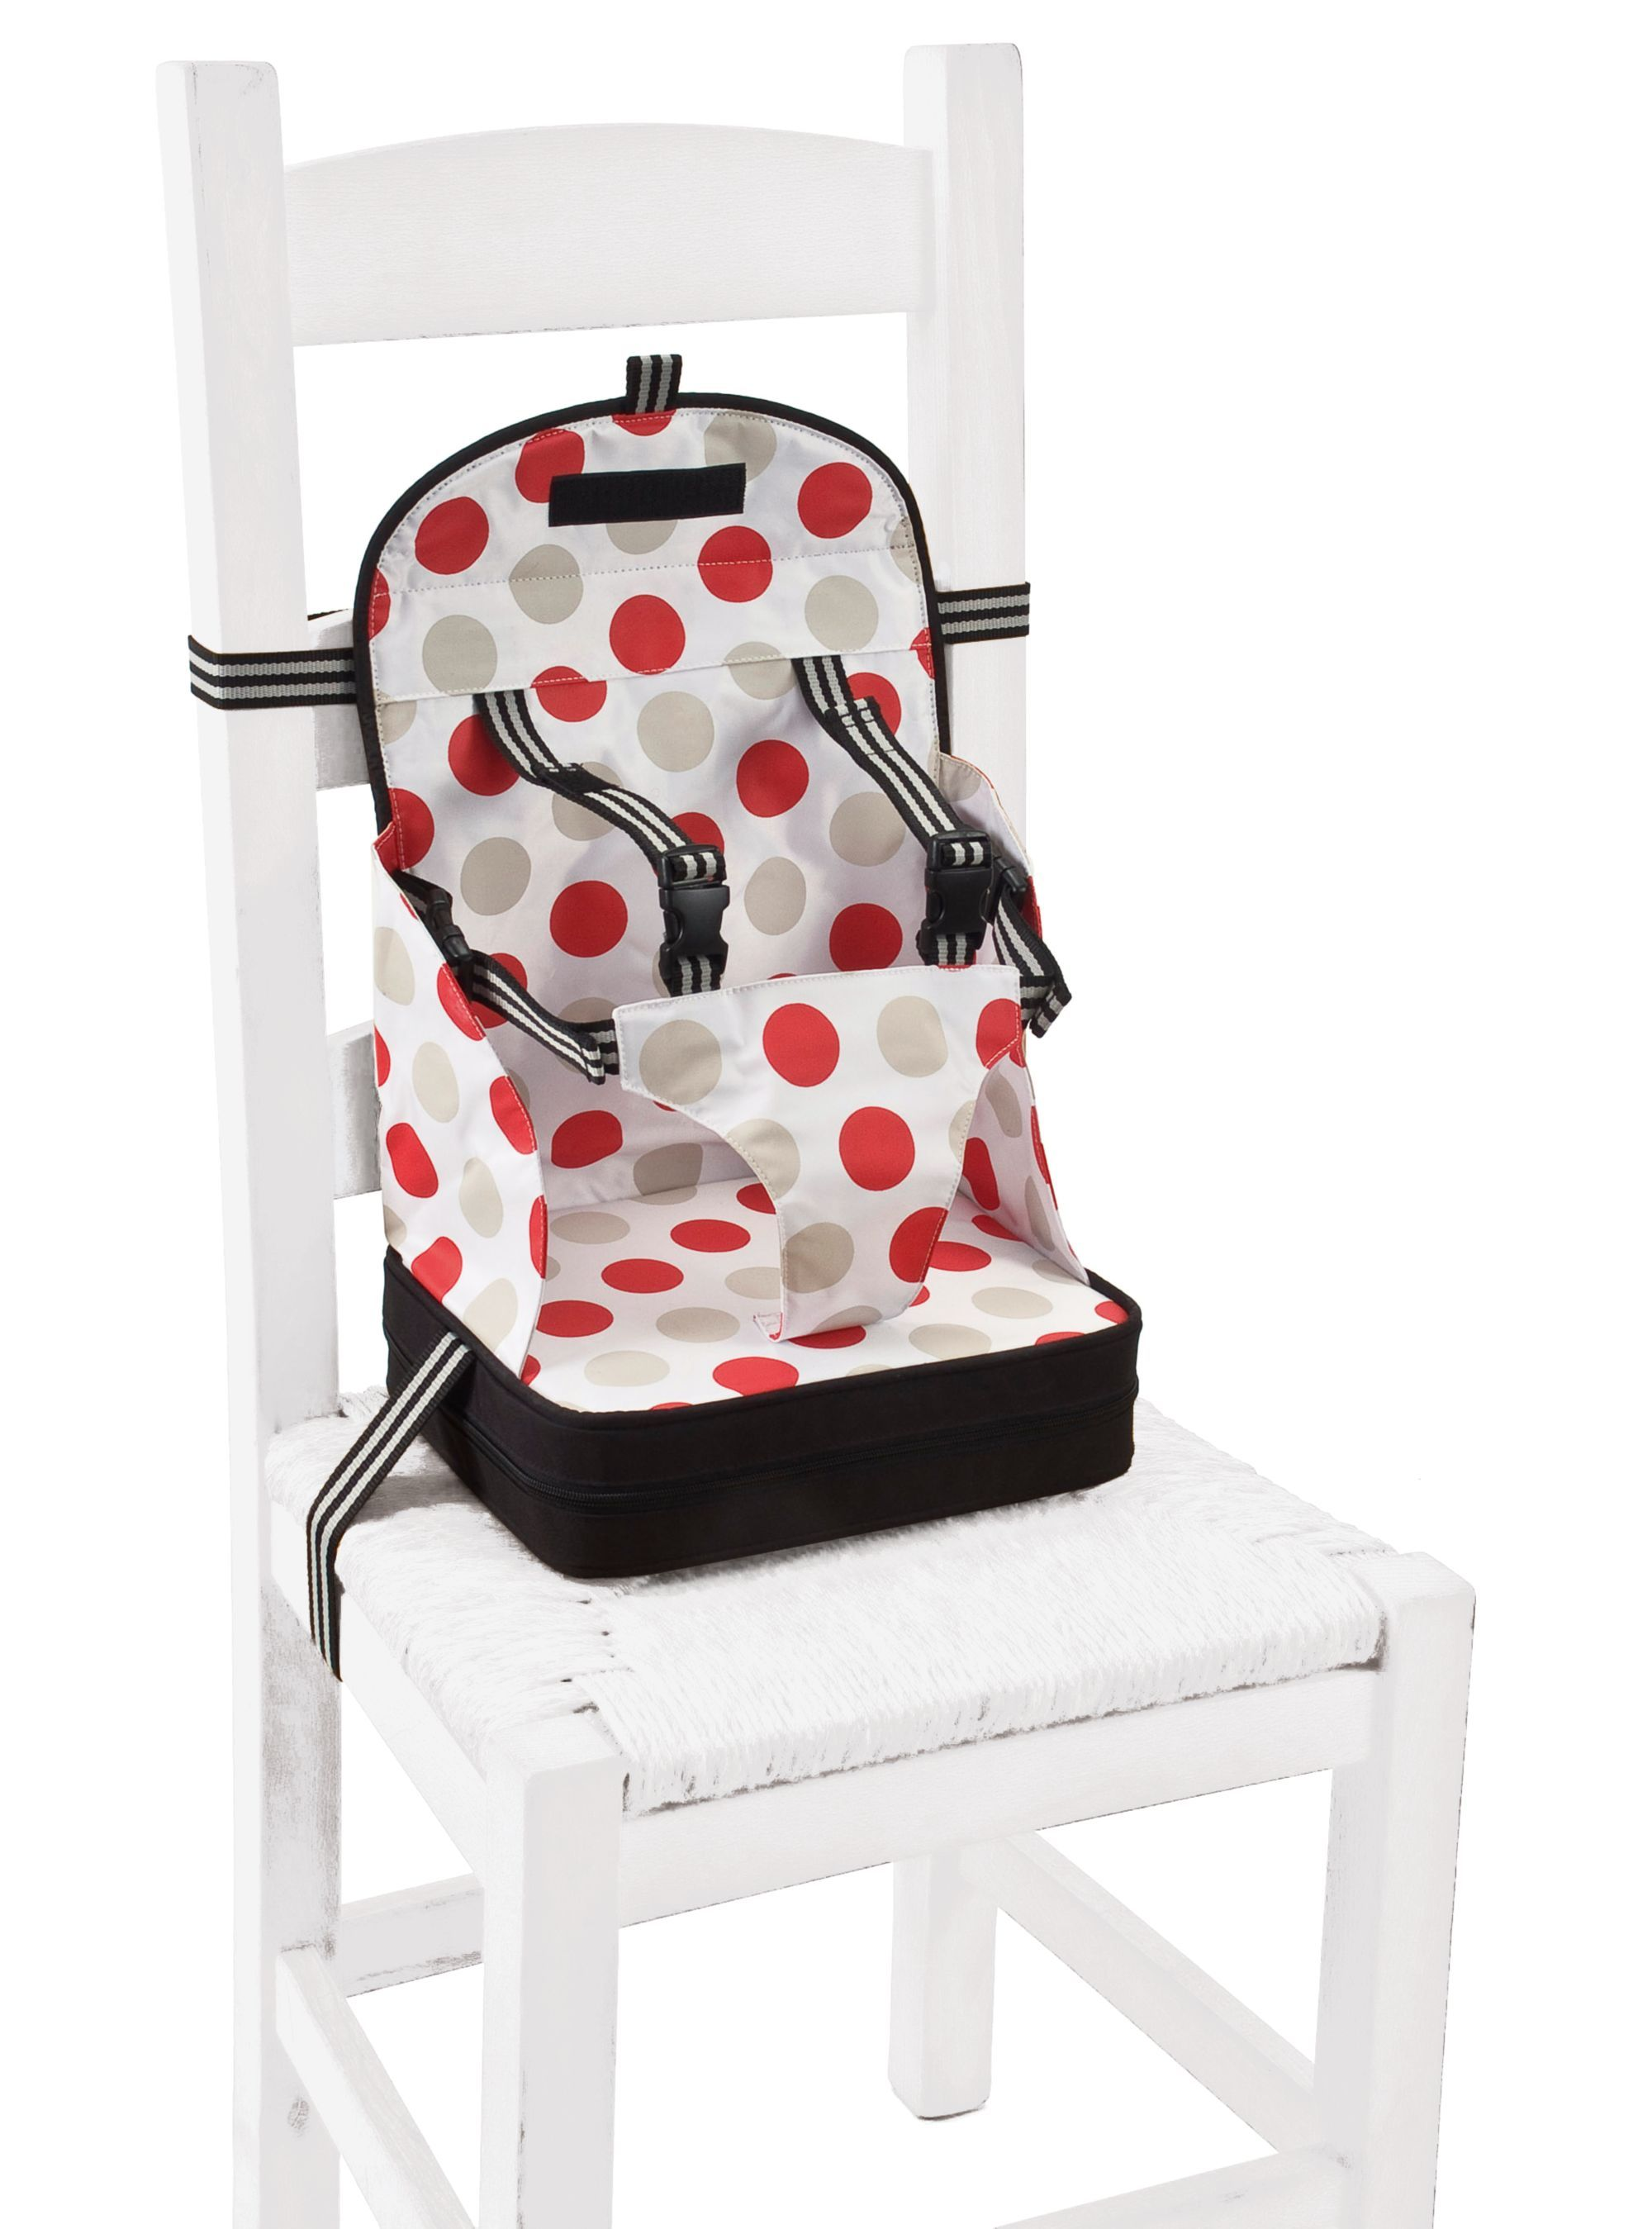 Owl High Chair Mothercare Travel High Chair Booster Seat Joshymomo Org